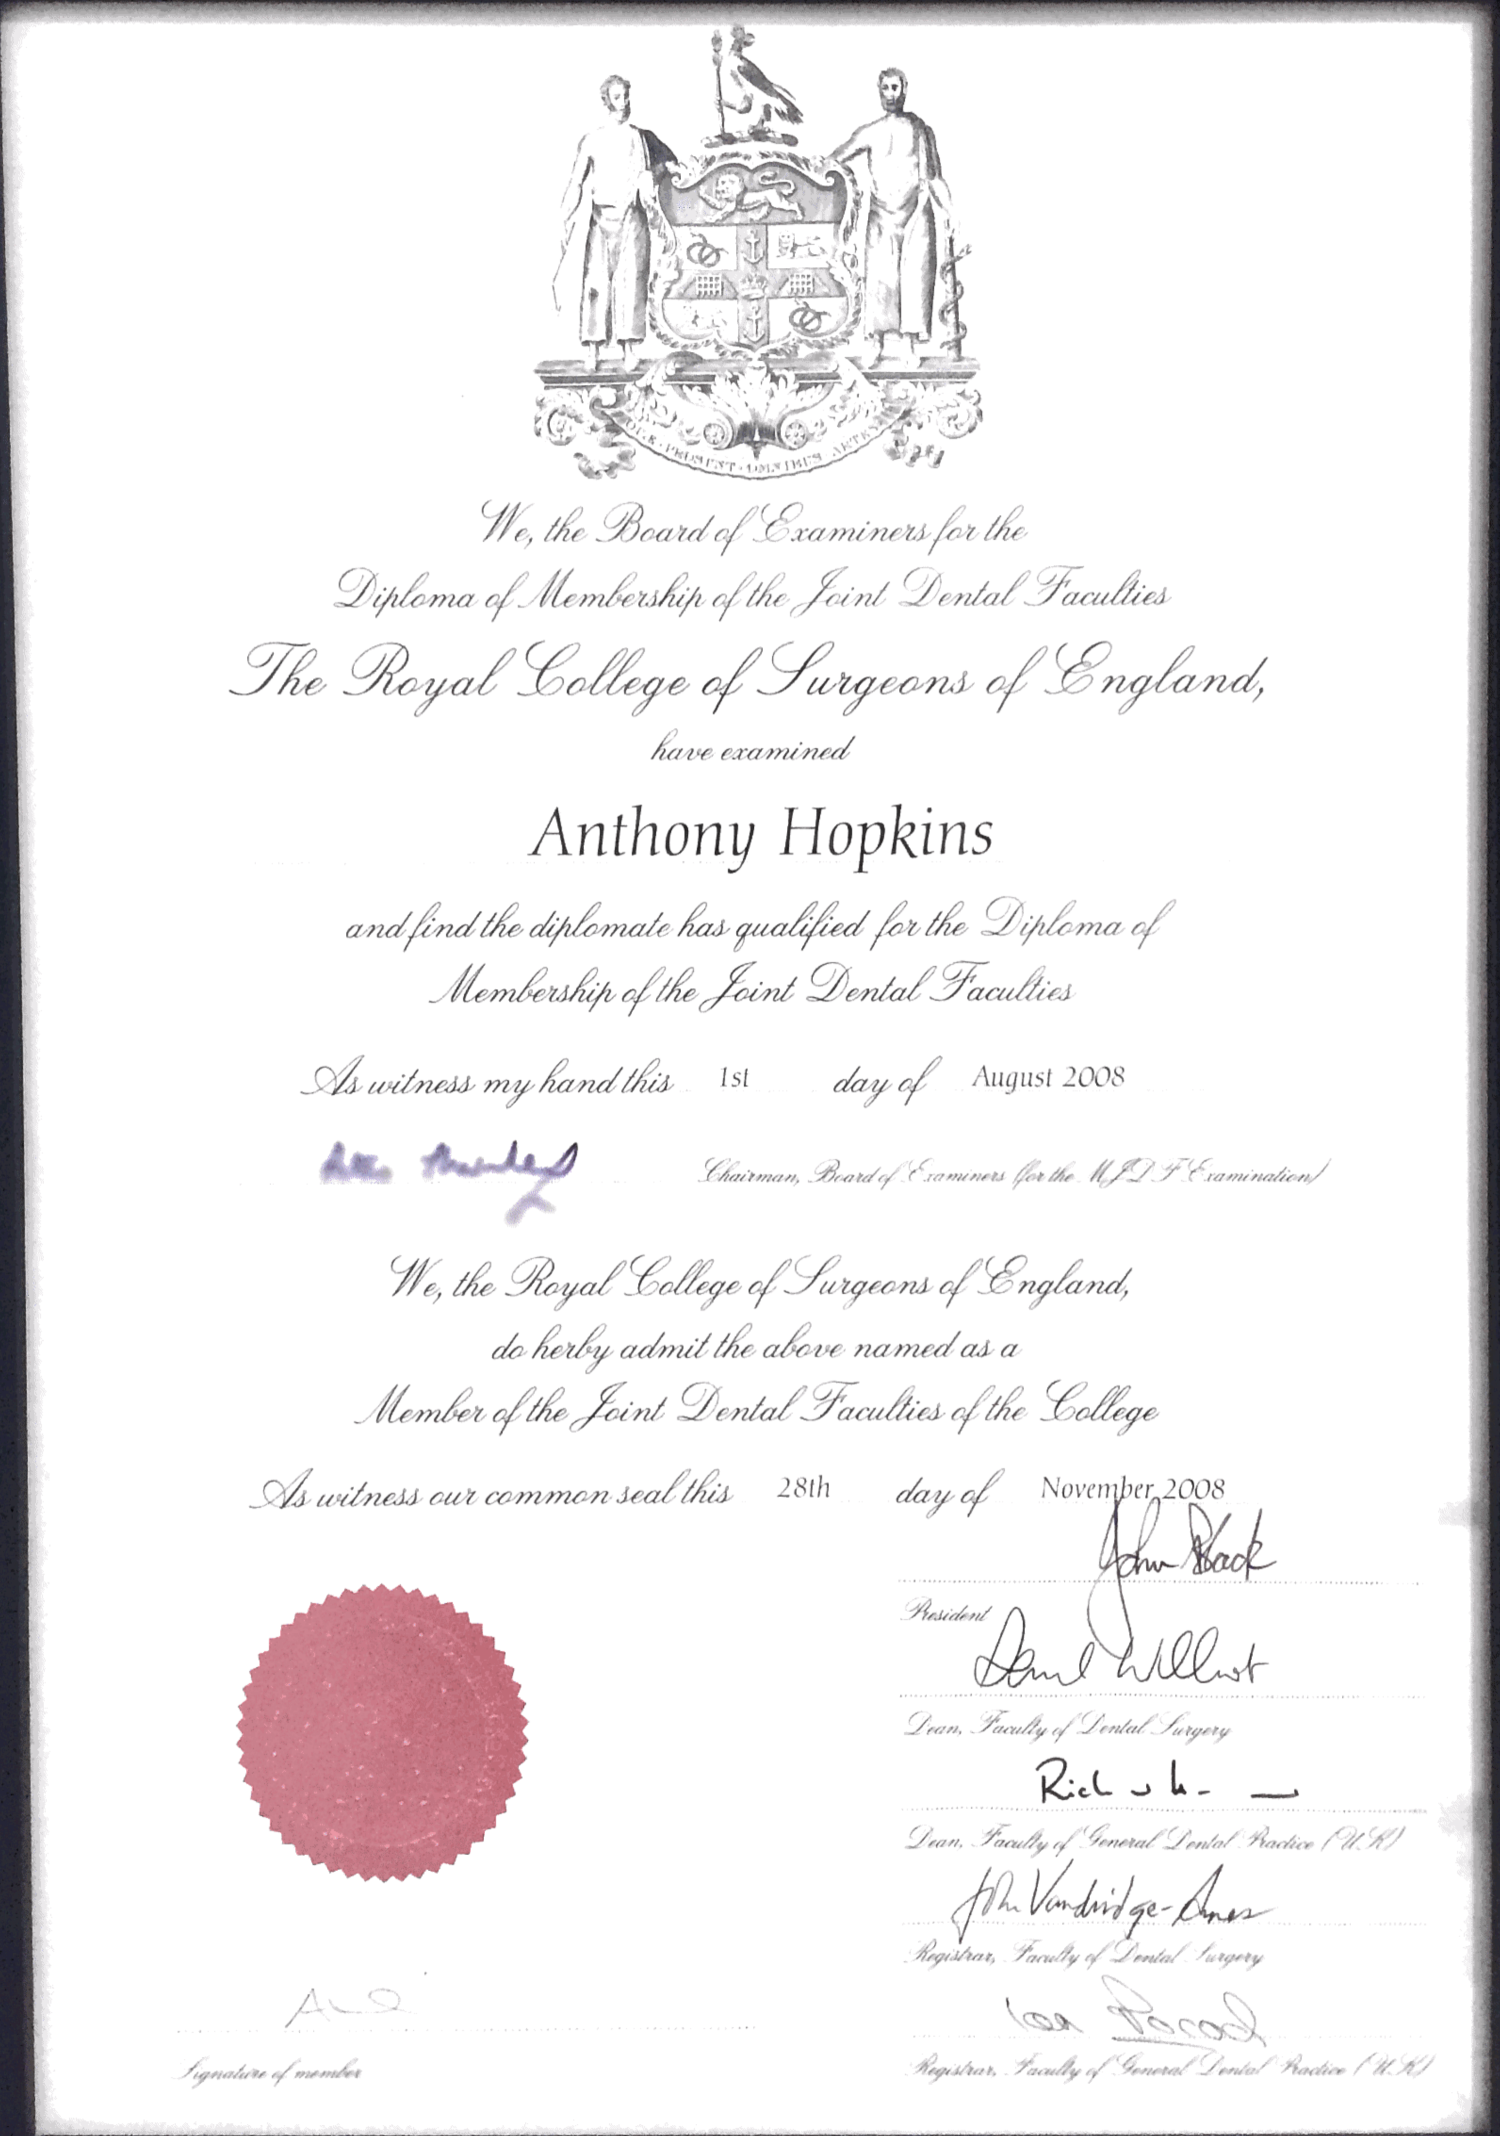 Diploma of membership awarded by the Royal College of Surgeons England